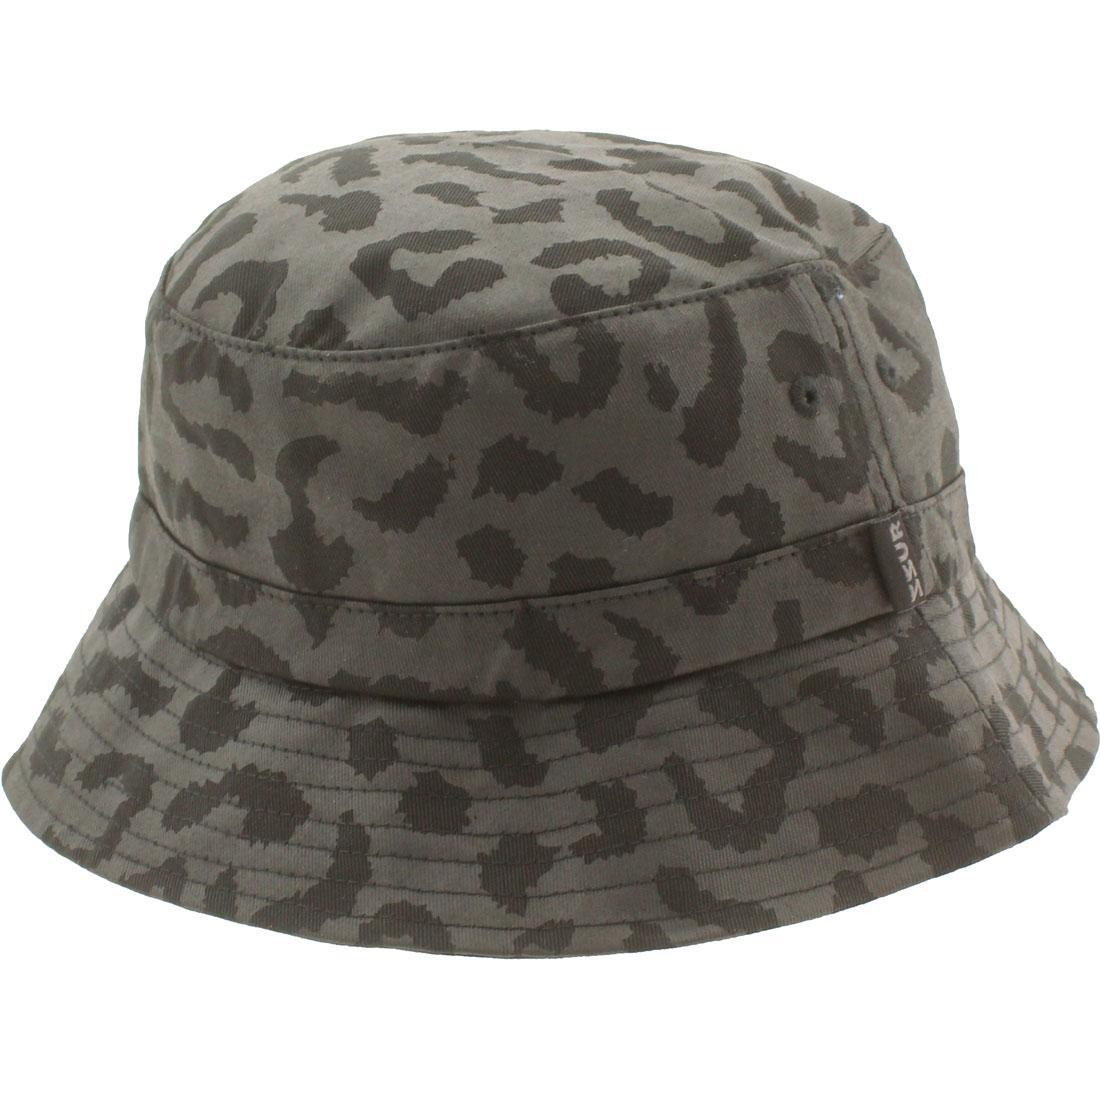 8cad1b1a6 Obey Uplands Bucket Hat (Gray / Camo) - When